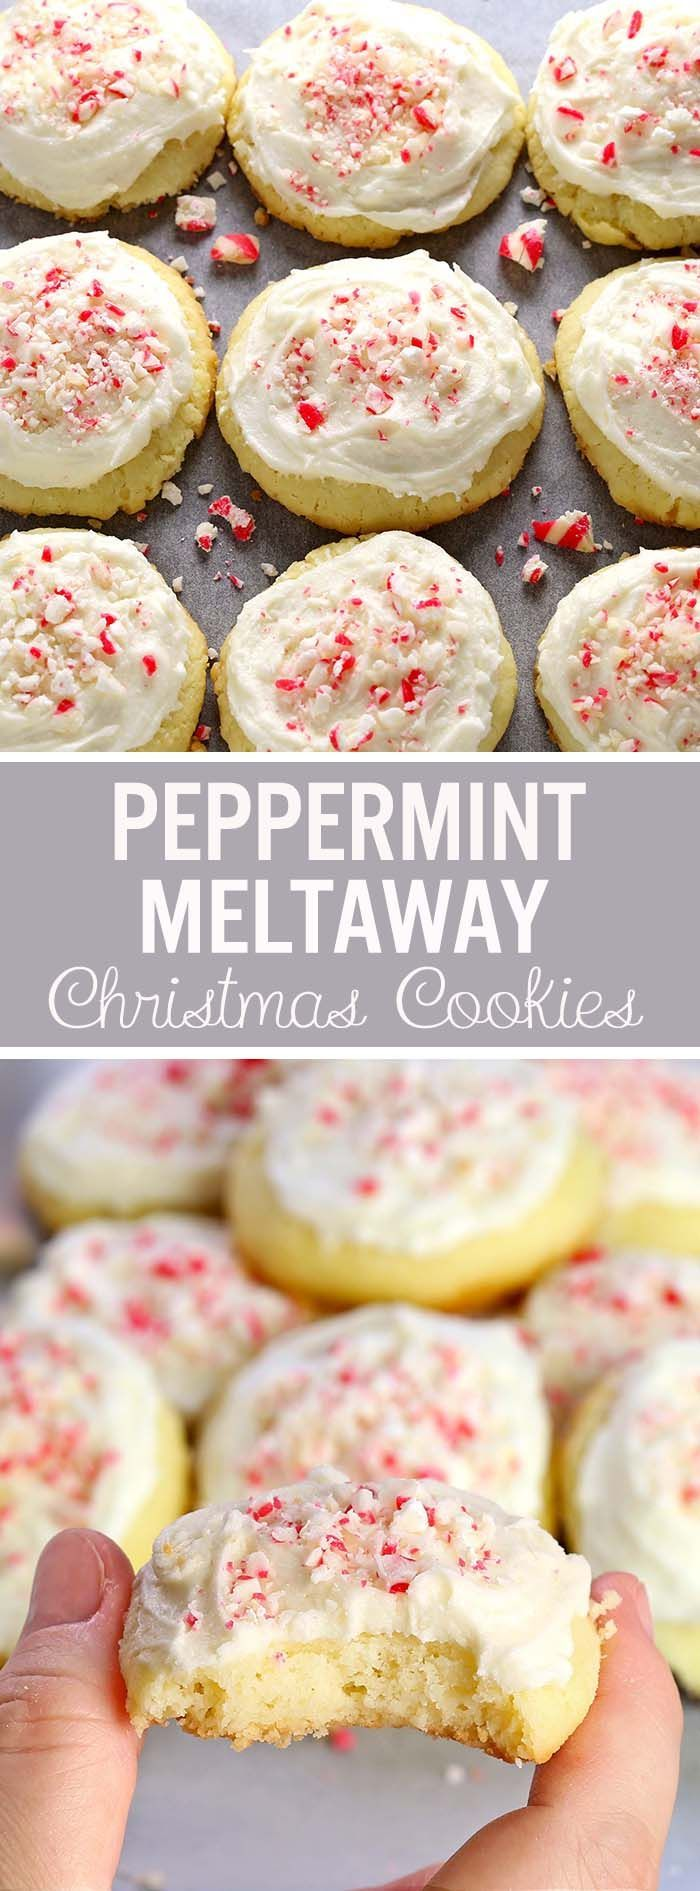 Meltaway Cookies now in a new, special Christmas Edition – in a little more festive suit, with a touch of Peppermint Buttercream Frosting and crispy little candy cane crumbs. And YES they DO melt in your mouth...do I need to say more ?